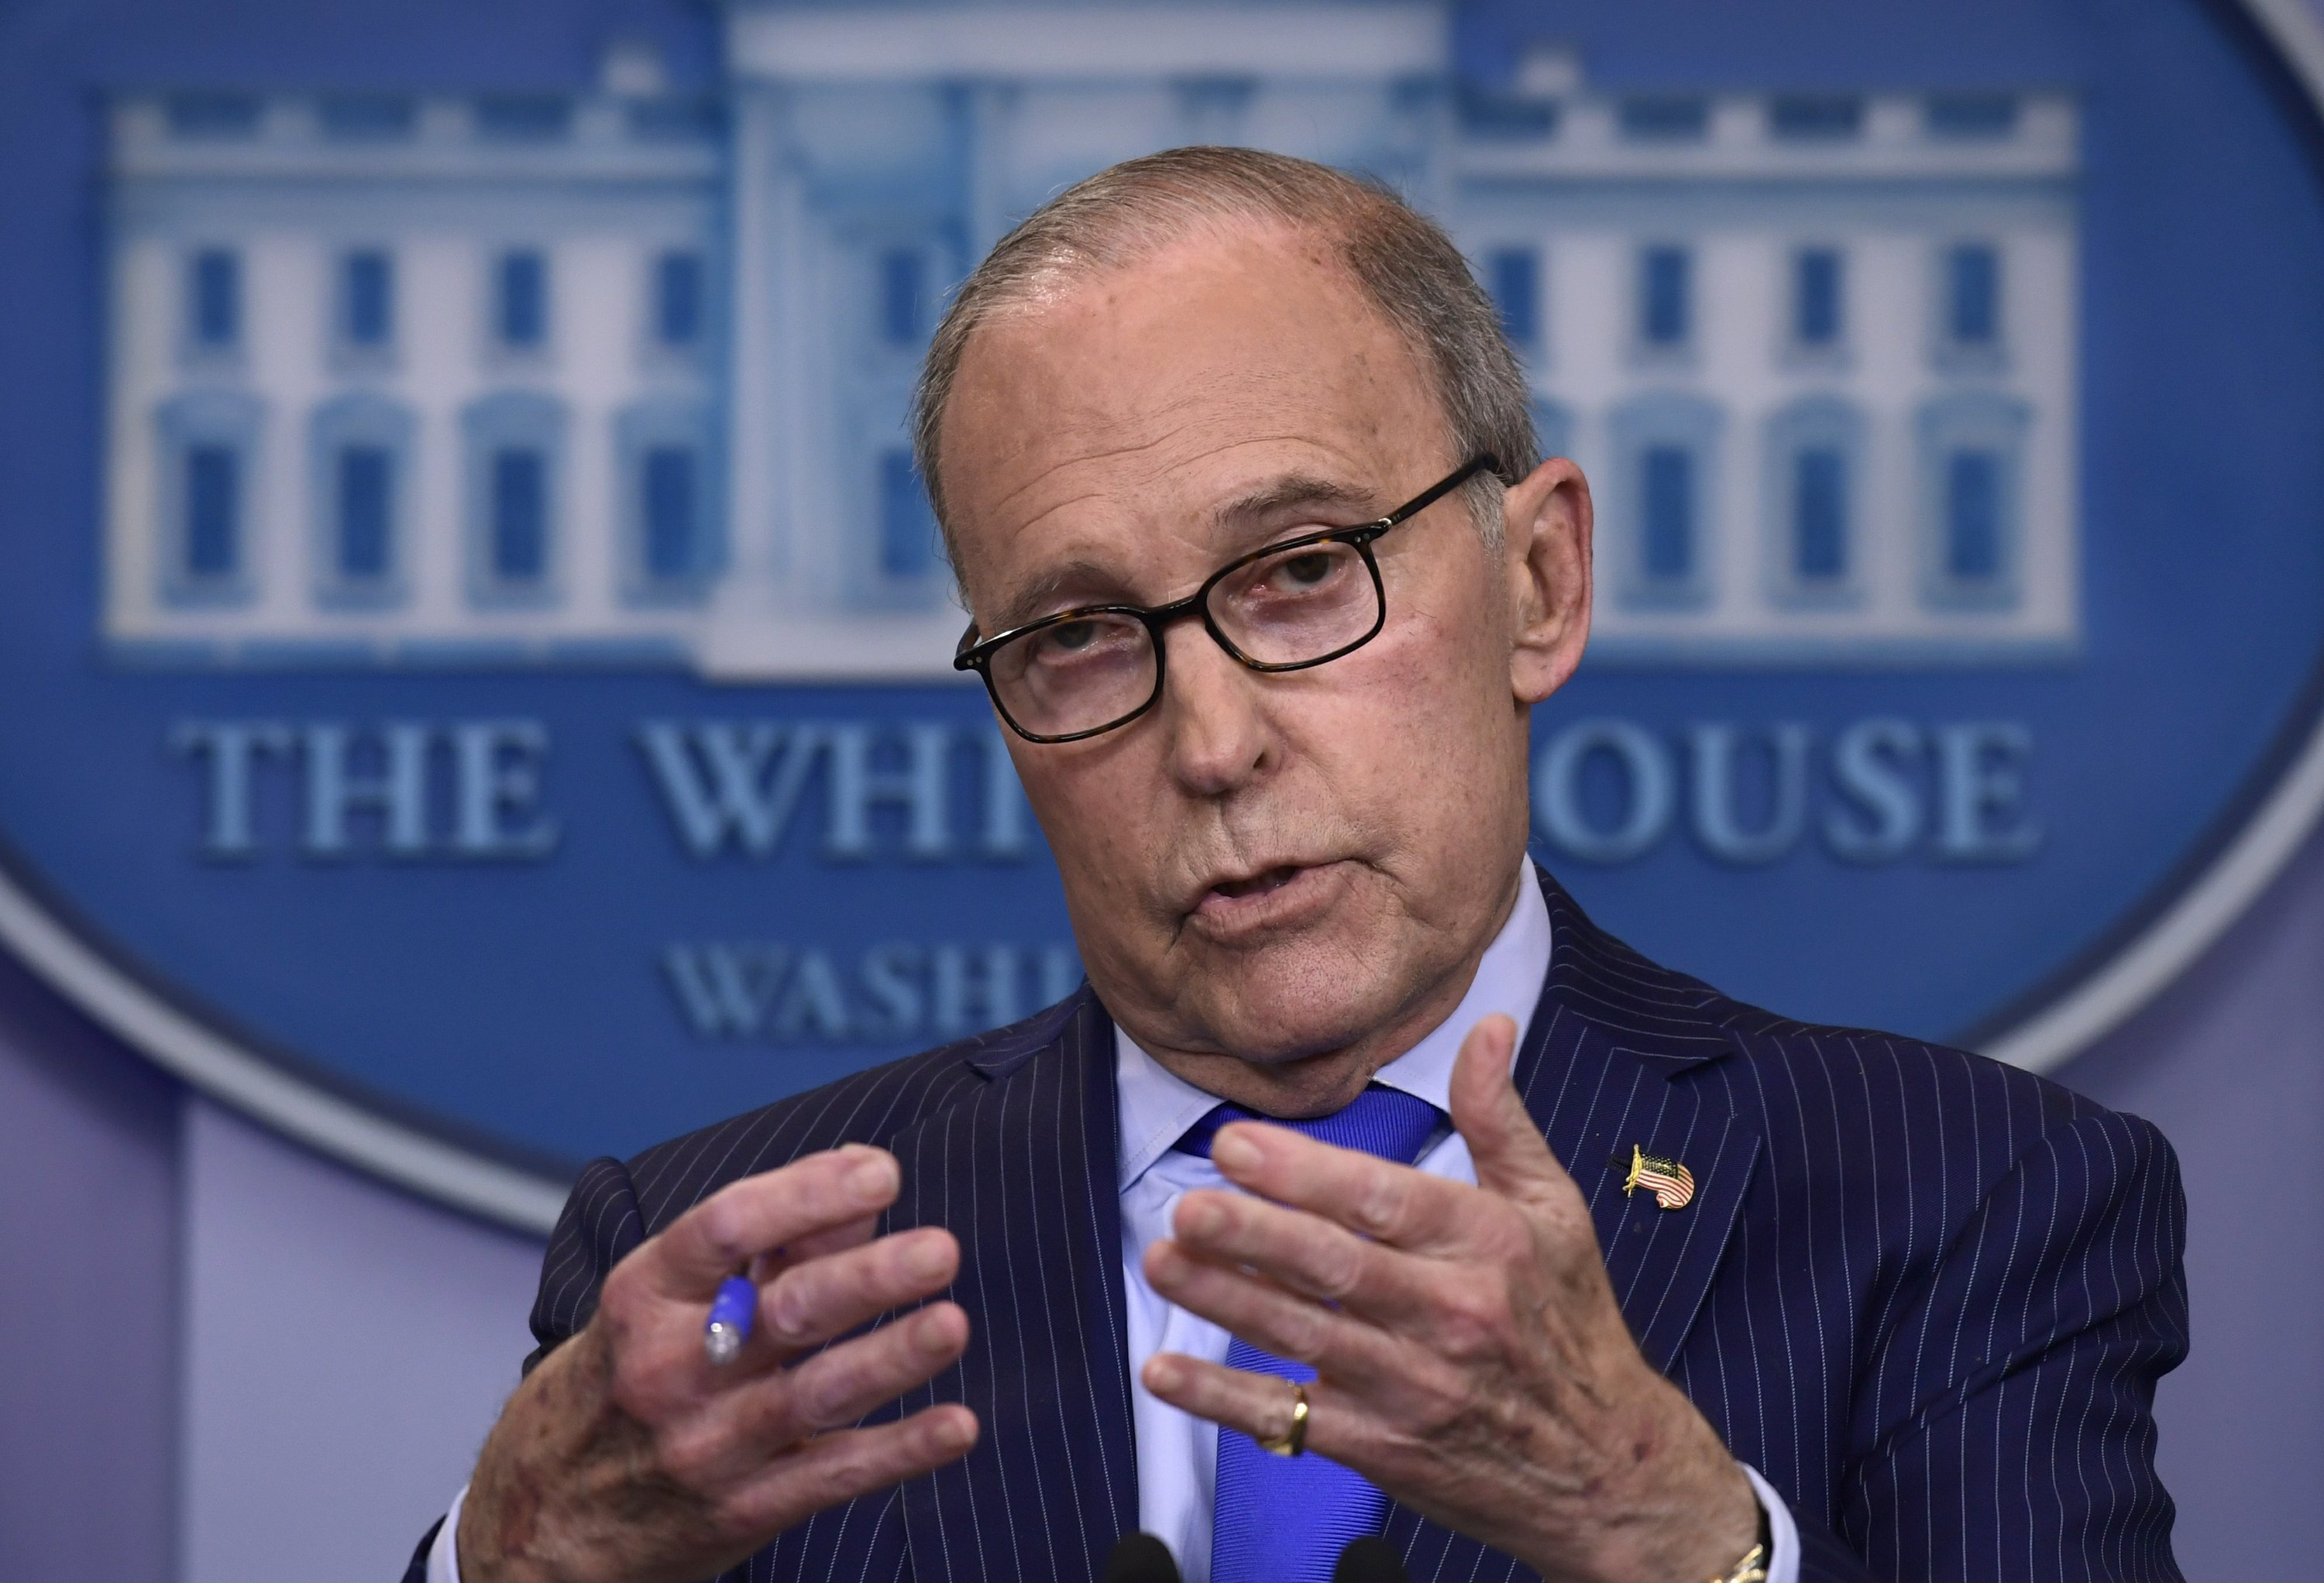 Senior White House economic adviser Larry Kudlow speaks during a briefing at the White House in Washington